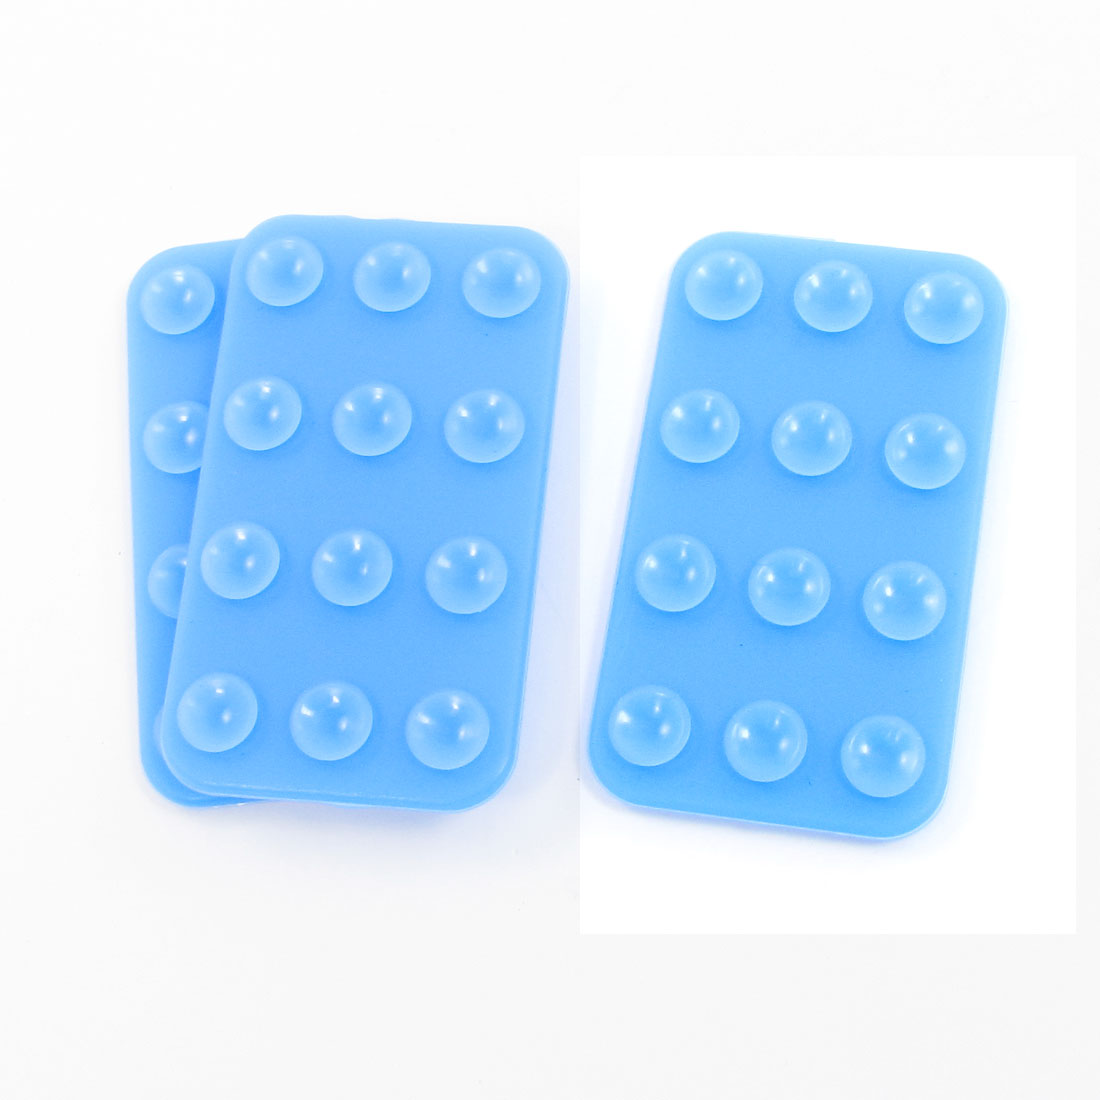 3PCS Mobile Suction Cup Sucker Holder Silicone Case Blue for Tablet PC